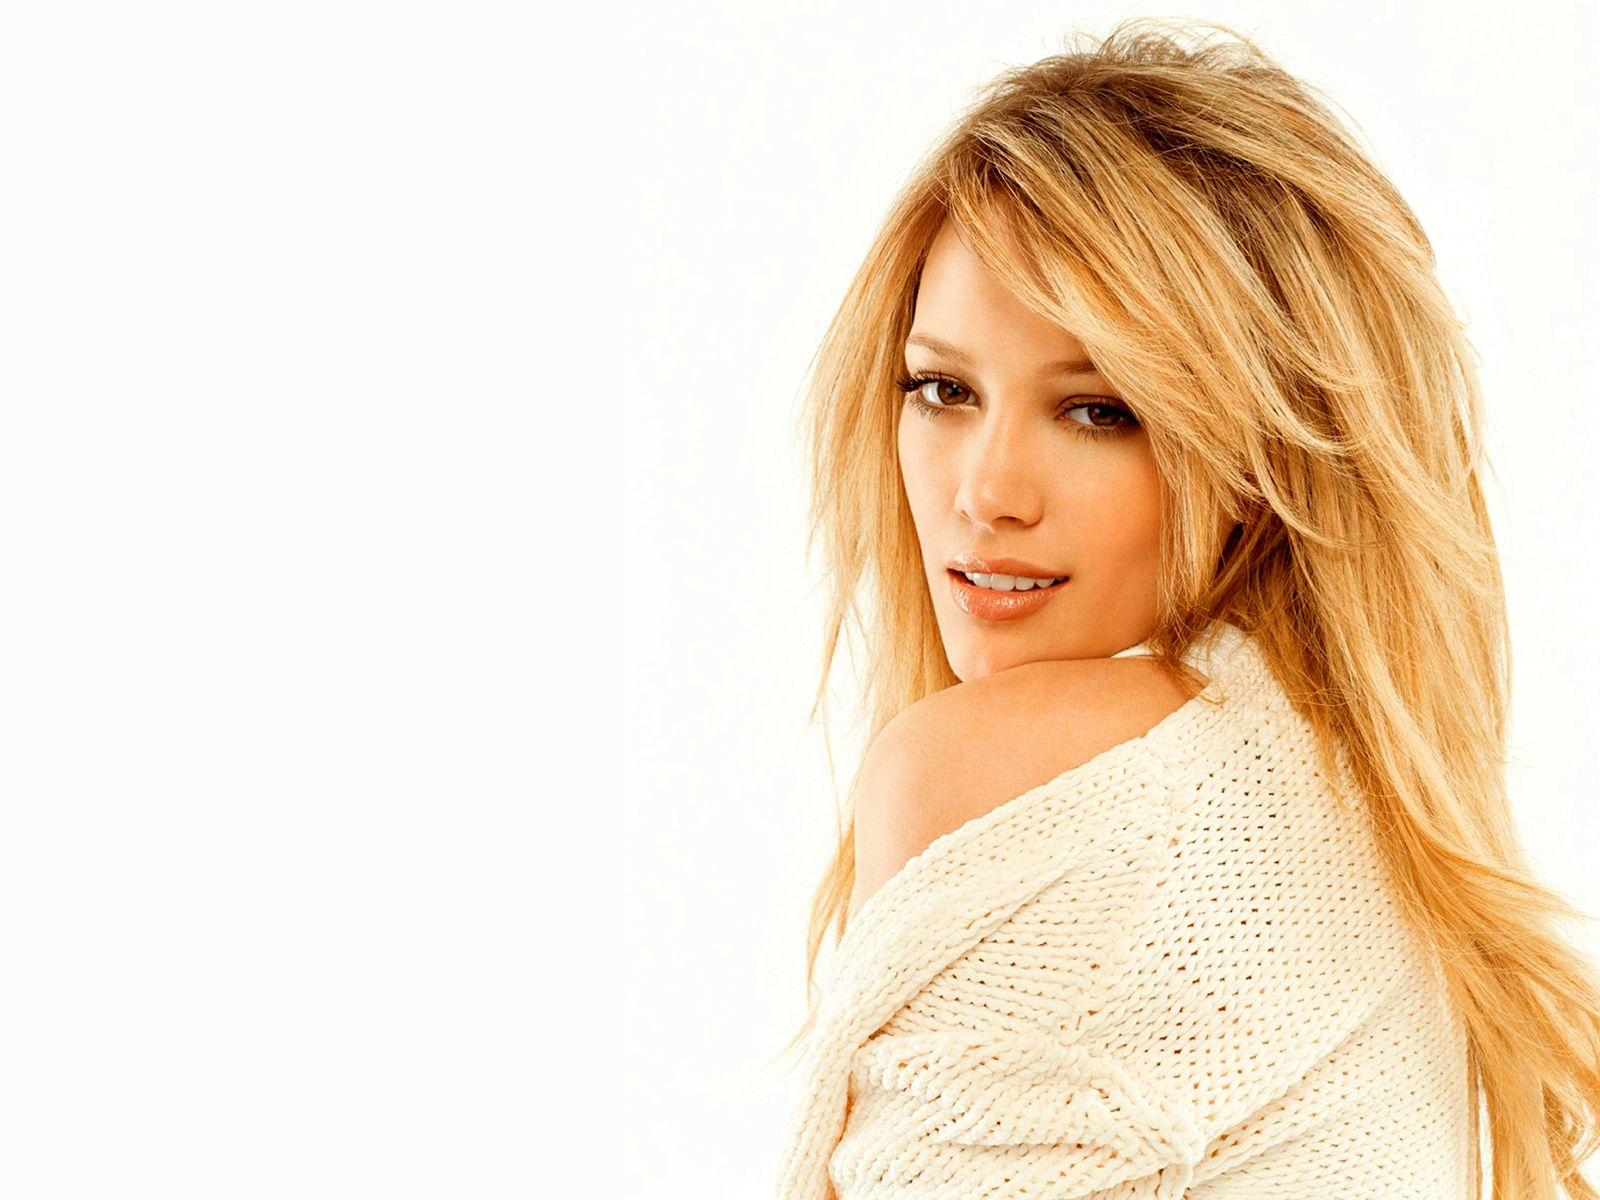 Cute Hollywood Actress Hd Wallpapers Hilary Duff Latest Look Popopics Com